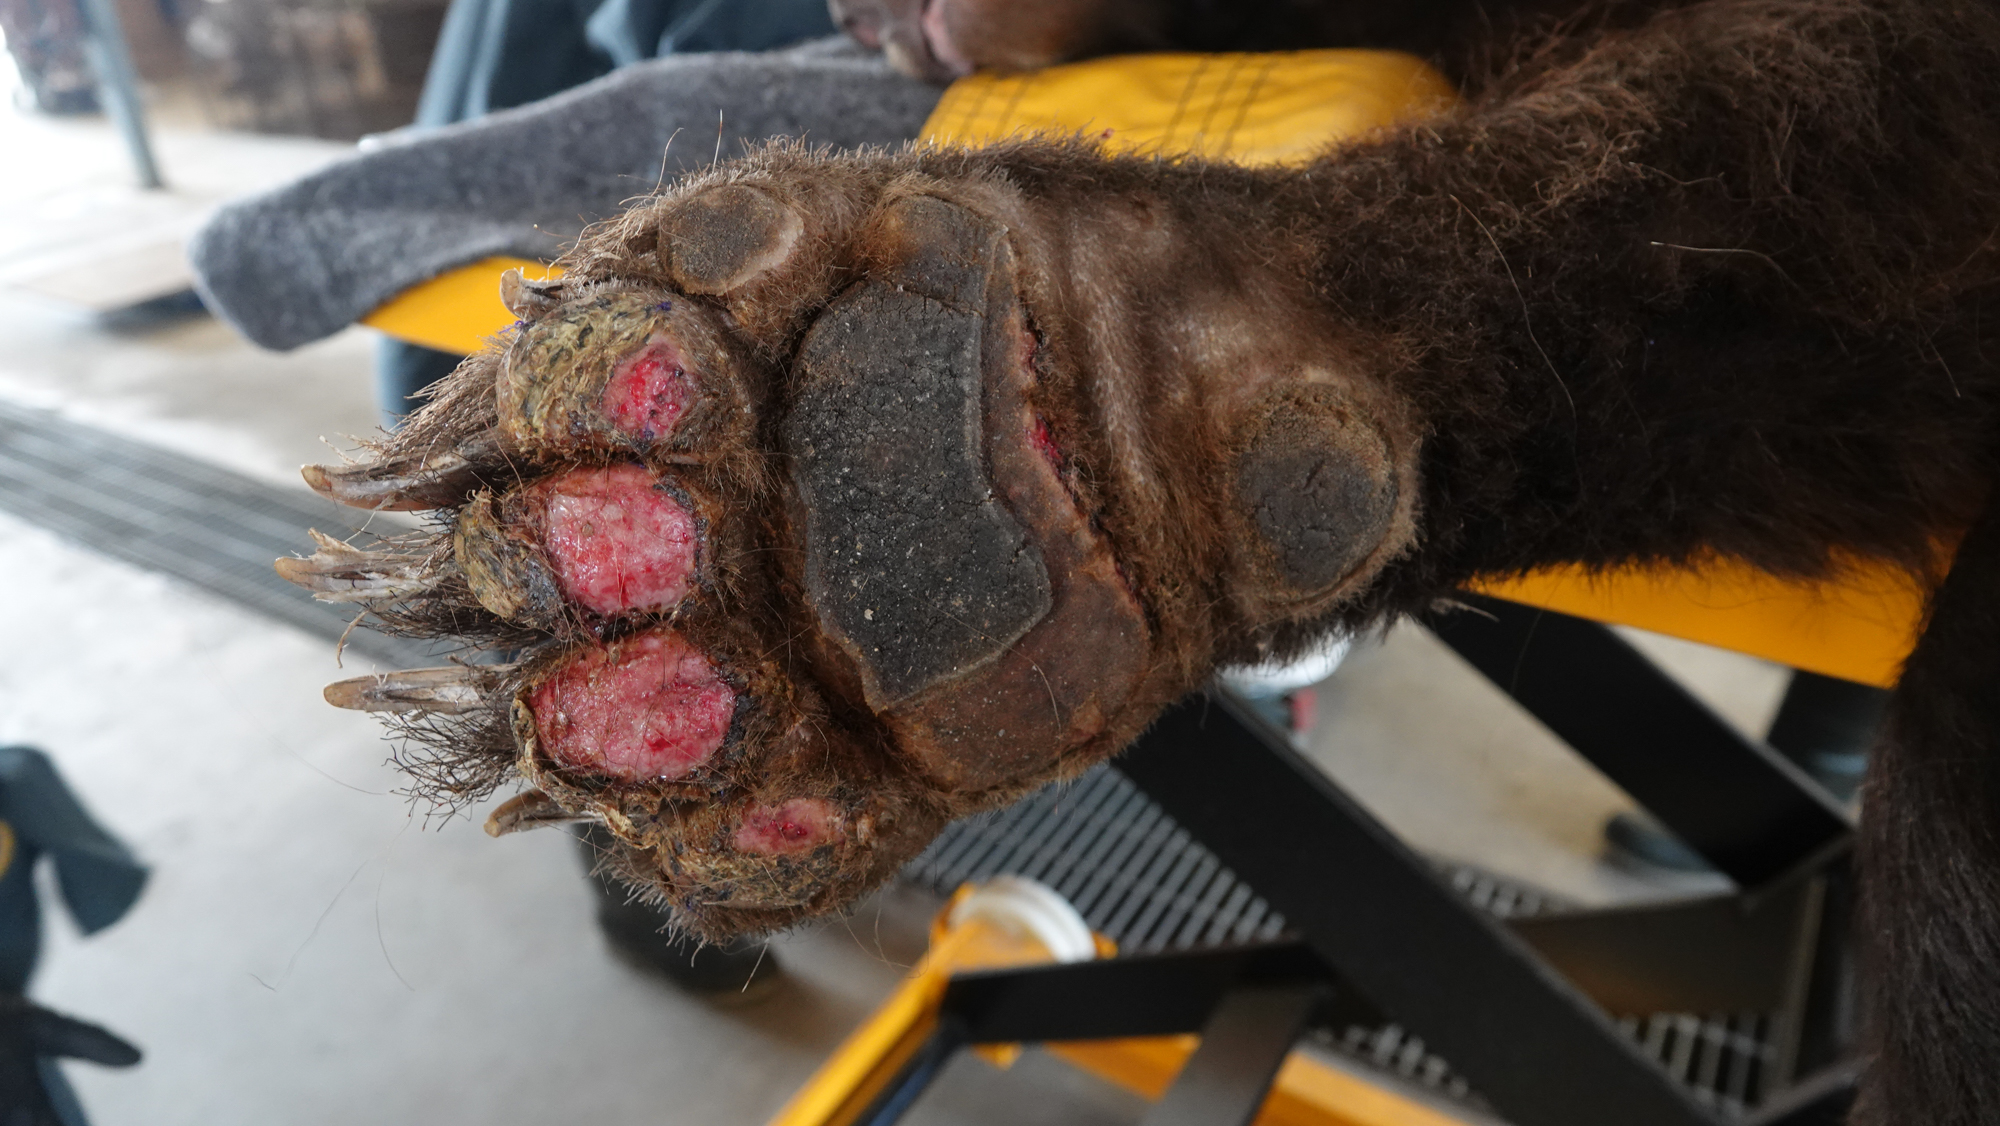 Bear paw with wounds from wildfire burn